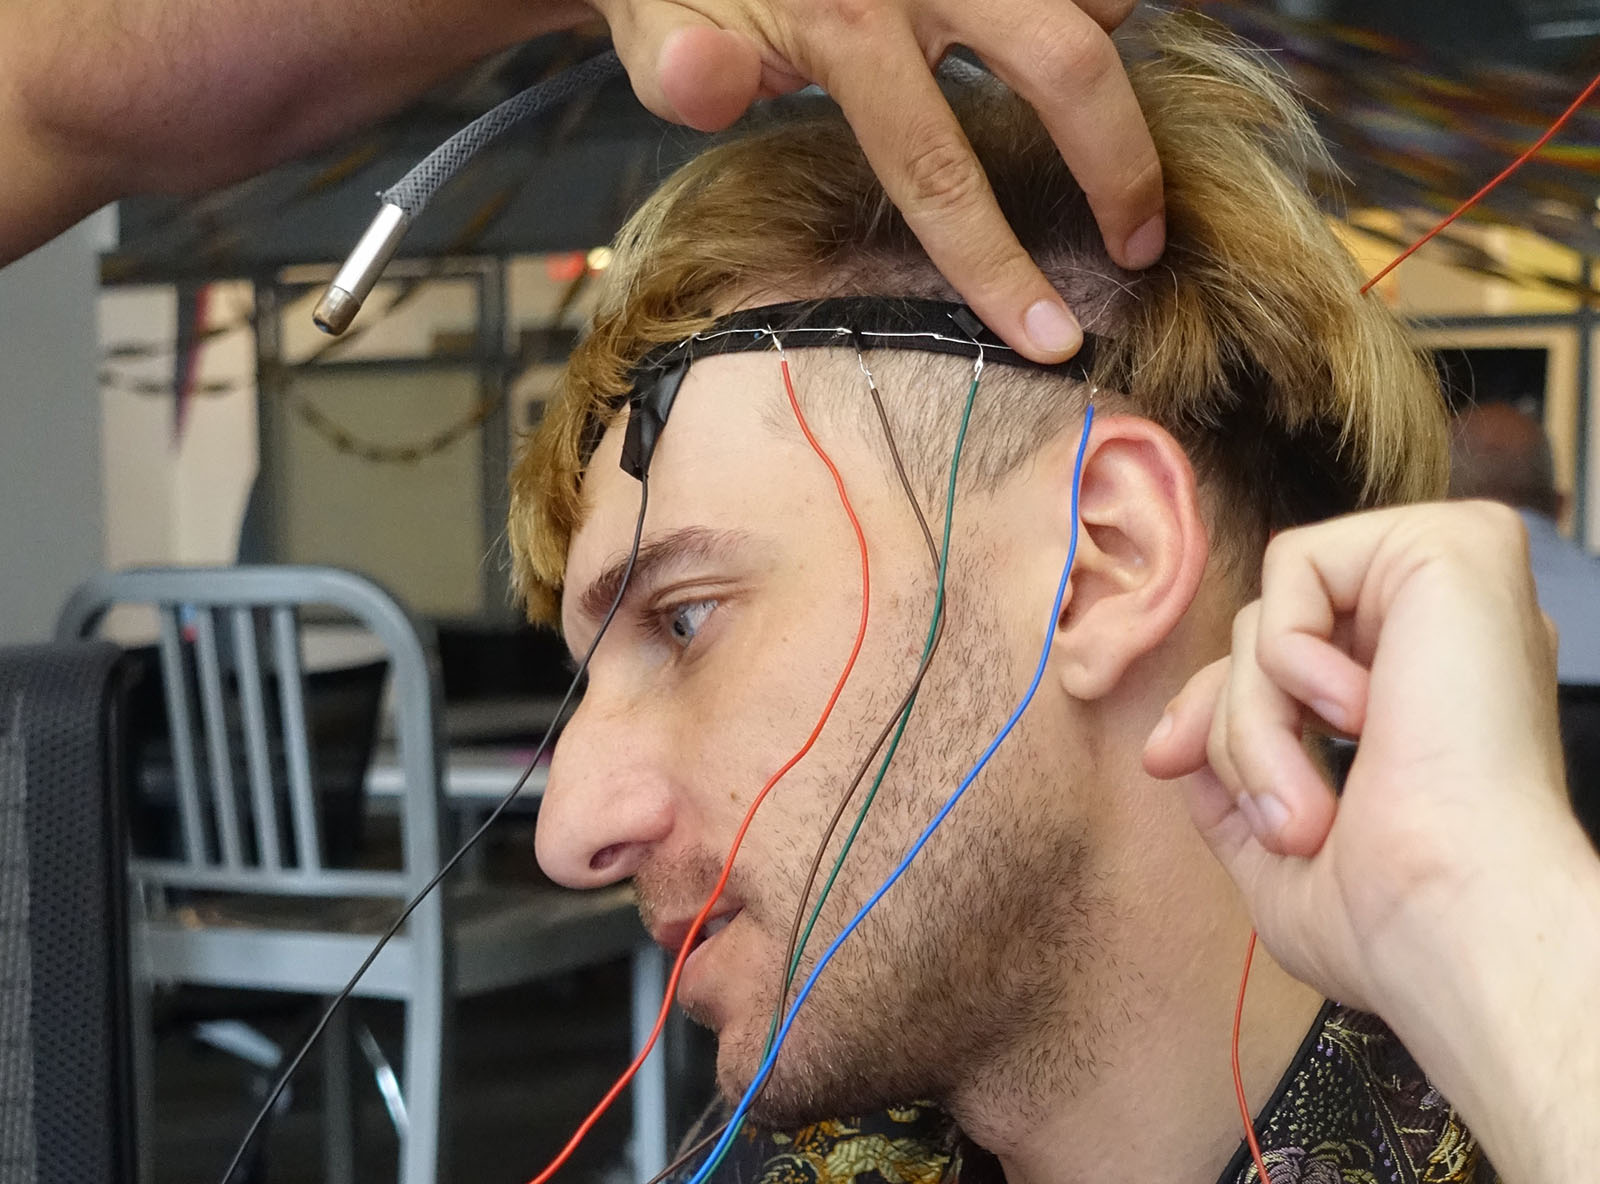 Cyborg Artist Neil Harbisson during his residency at ThoughtWorks